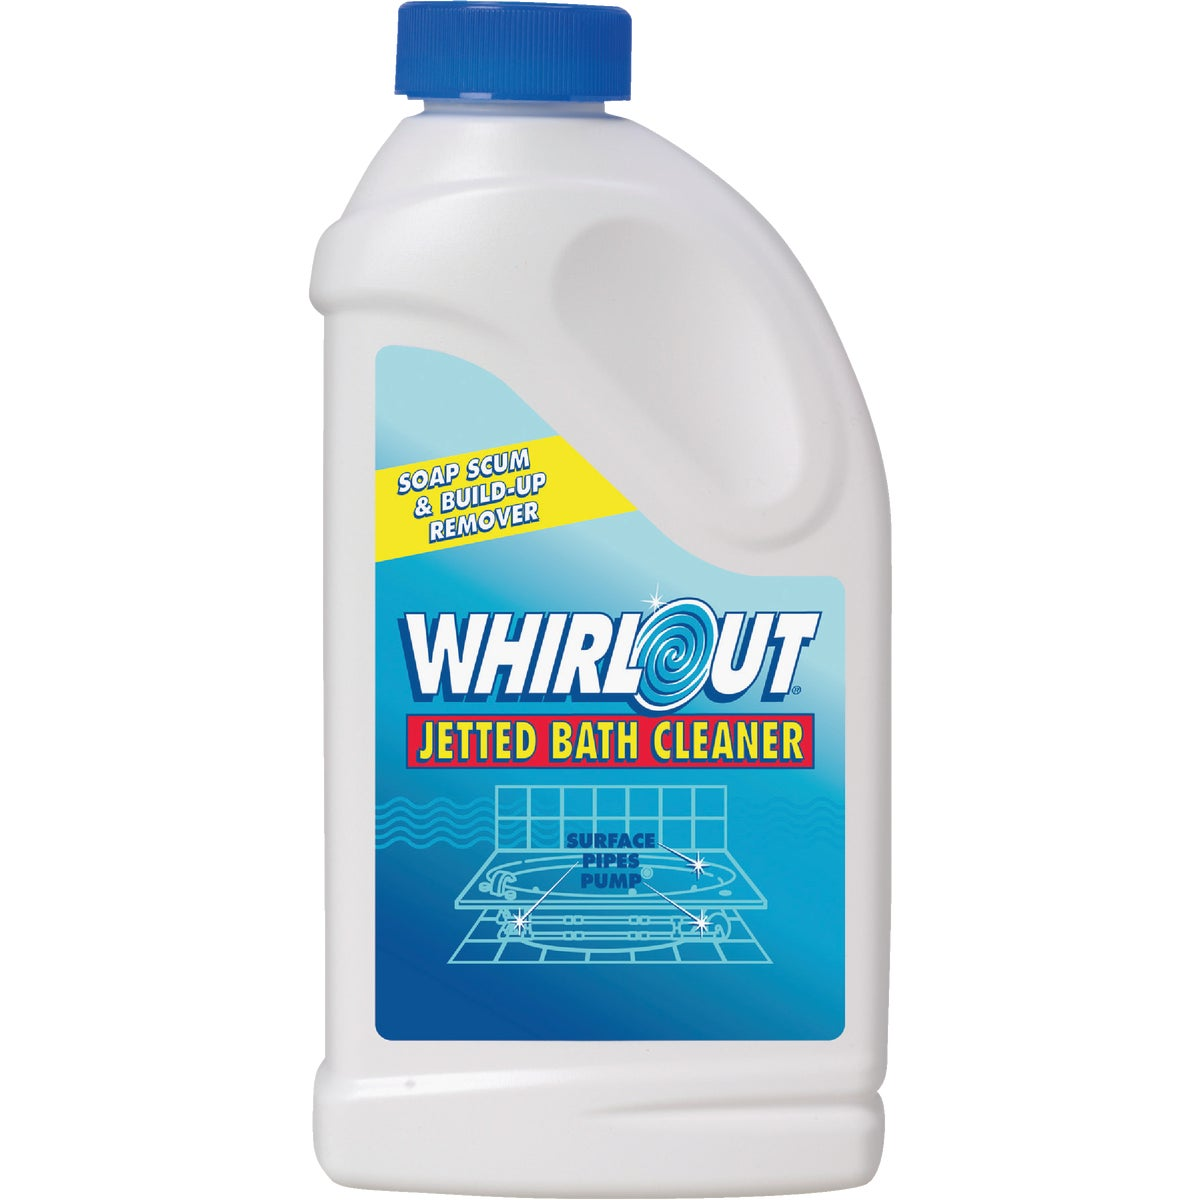 22 OZ WHIRLPOOL CLEANER - W006N by Summit Brands